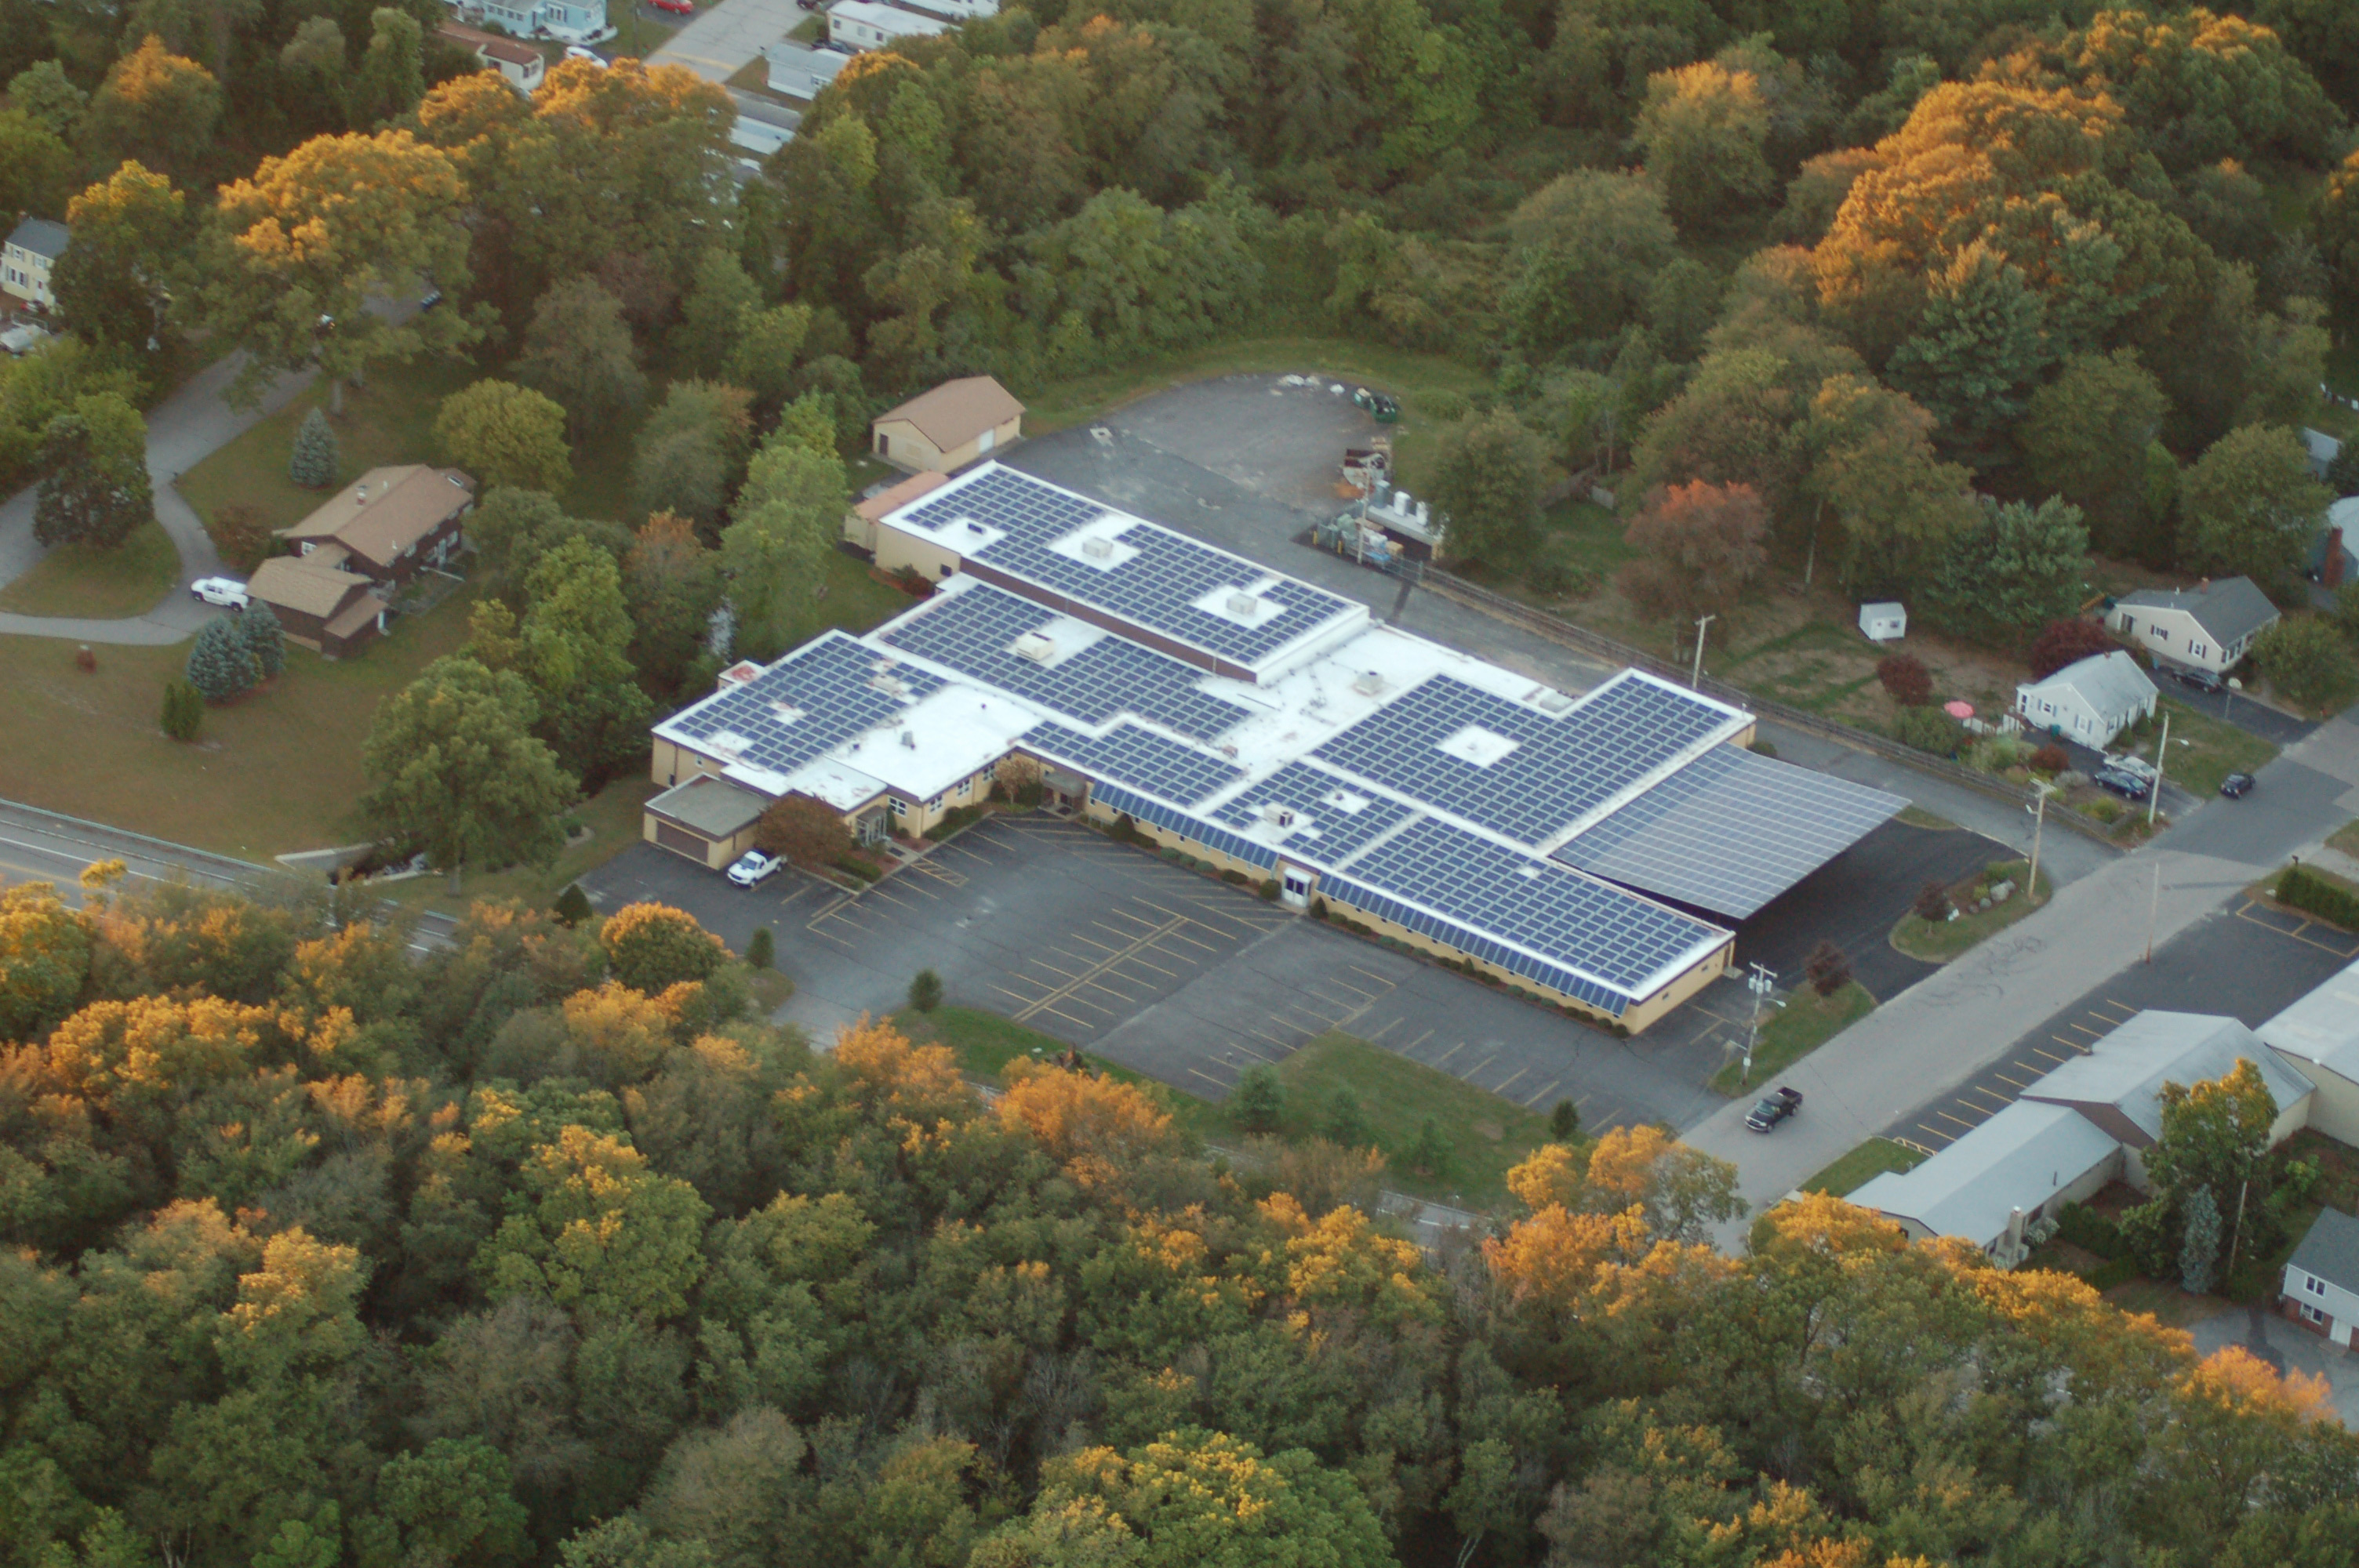 Aerial view of commercial solar panels